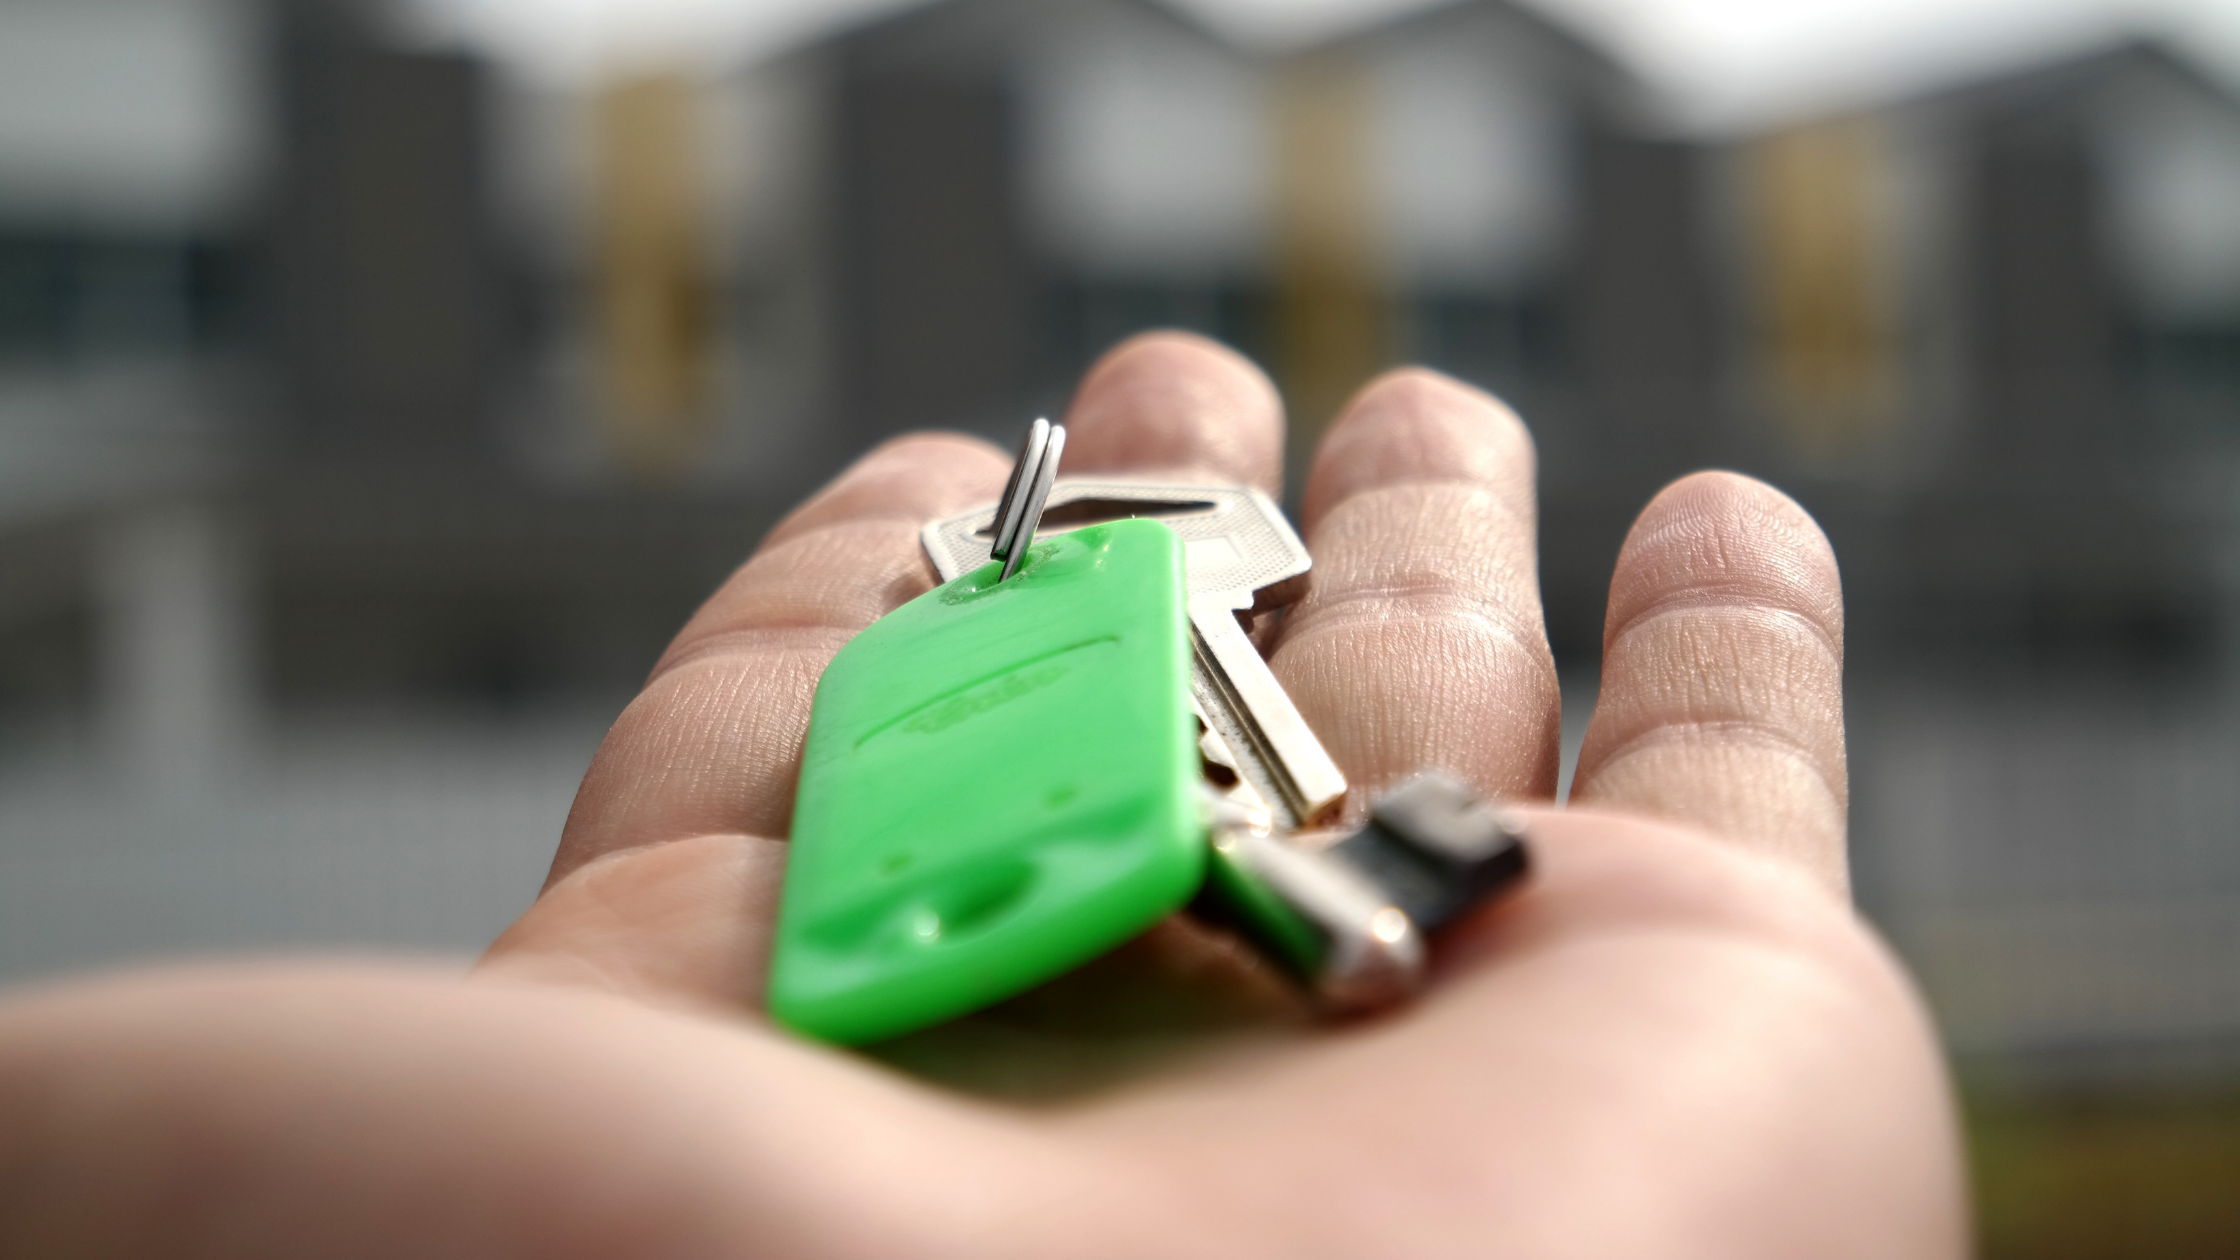 Person holding a set of keys to a house in their outstretched hand.